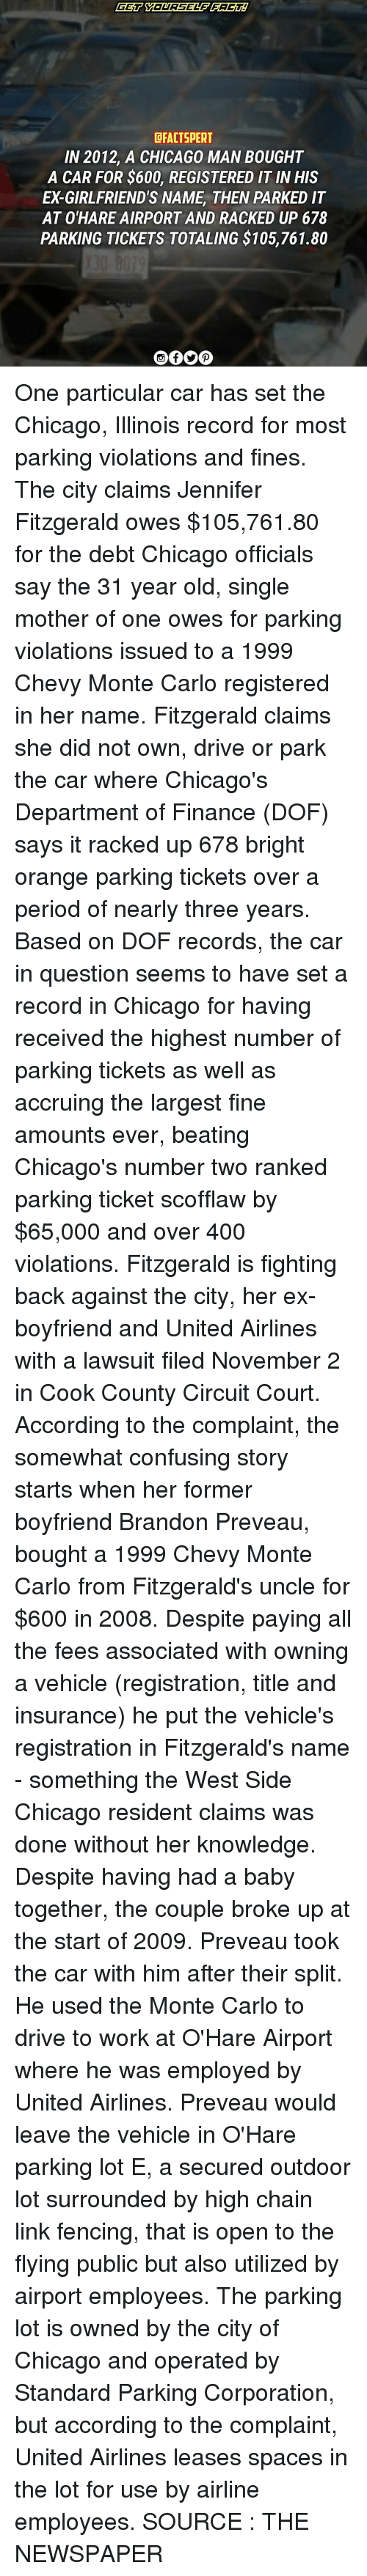 Monte Carlo: CFACTSPERT  IN 2012, A CHICAGO MAN BOUGHT  A CAR FOR $600, REGISTERED IT INHIS  ED GIRLFRIEND'S NAME THEN PARKED IT  AT O'HARE AIRPORT AND RACKED UP 678  PARKING TICKETS TOTALING $105,761.80 One particular car has set the Chicago, Illinois record for most parking violations and fines. The city claims Jennifer Fitzgerald owes $105,761.80 for the debt Chicago officials say the 31 year old, single mother of one owes for parking violations issued to a 1999 Chevy Monte Carlo registered in her name. Fitzgerald claims she did not own, drive or park the car where Chicago's Department of Finance (DOF) says it racked up 678 bright orange parking tickets over a period of nearly three years. Based on DOF records, the car in question seems to have set a record in Chicago for having received the highest number of parking tickets as well as accruing the largest fine amounts ever, beating Chicago's number two ranked parking ticket scofflaw by $65,000 and over 400 violations. Fitzgerald is fighting back against the city, her ex-boyfriend and United Airlines with a lawsuit filed November 2 in Cook County Circuit Court. According to the complaint, the somewhat confusing story starts when her former boyfriend Brandon Preveau, bought a 1999 Chevy Monte Carlo from Fitzgerald's uncle for $600 in 2008. Despite paying all the fees associated with owning a vehicle (registration, title and insurance) he put the vehicle's registration in Fitzgerald's name - something the West Side Chicago resident claims was done without her knowledge. Despite having had a baby together, the couple broke up at the start of 2009. Preveau took the car with him after their split. He used the Monte Carlo to drive to work at O'Hare Airport where he was employed by United Airlines. Preveau would leave the vehicle in O'Hare parking lot E, a secured outdoor lot surrounded by high chain link fencing, that is open to the flying public but also utilized by airport employees. The parking lot is owned by the city of Chicago and operated by Standard Parking Corporation, but according to the complaint, United Airlines leases spaces in the lot for use by airline employees. SOURCE : THE NEWSPAPER